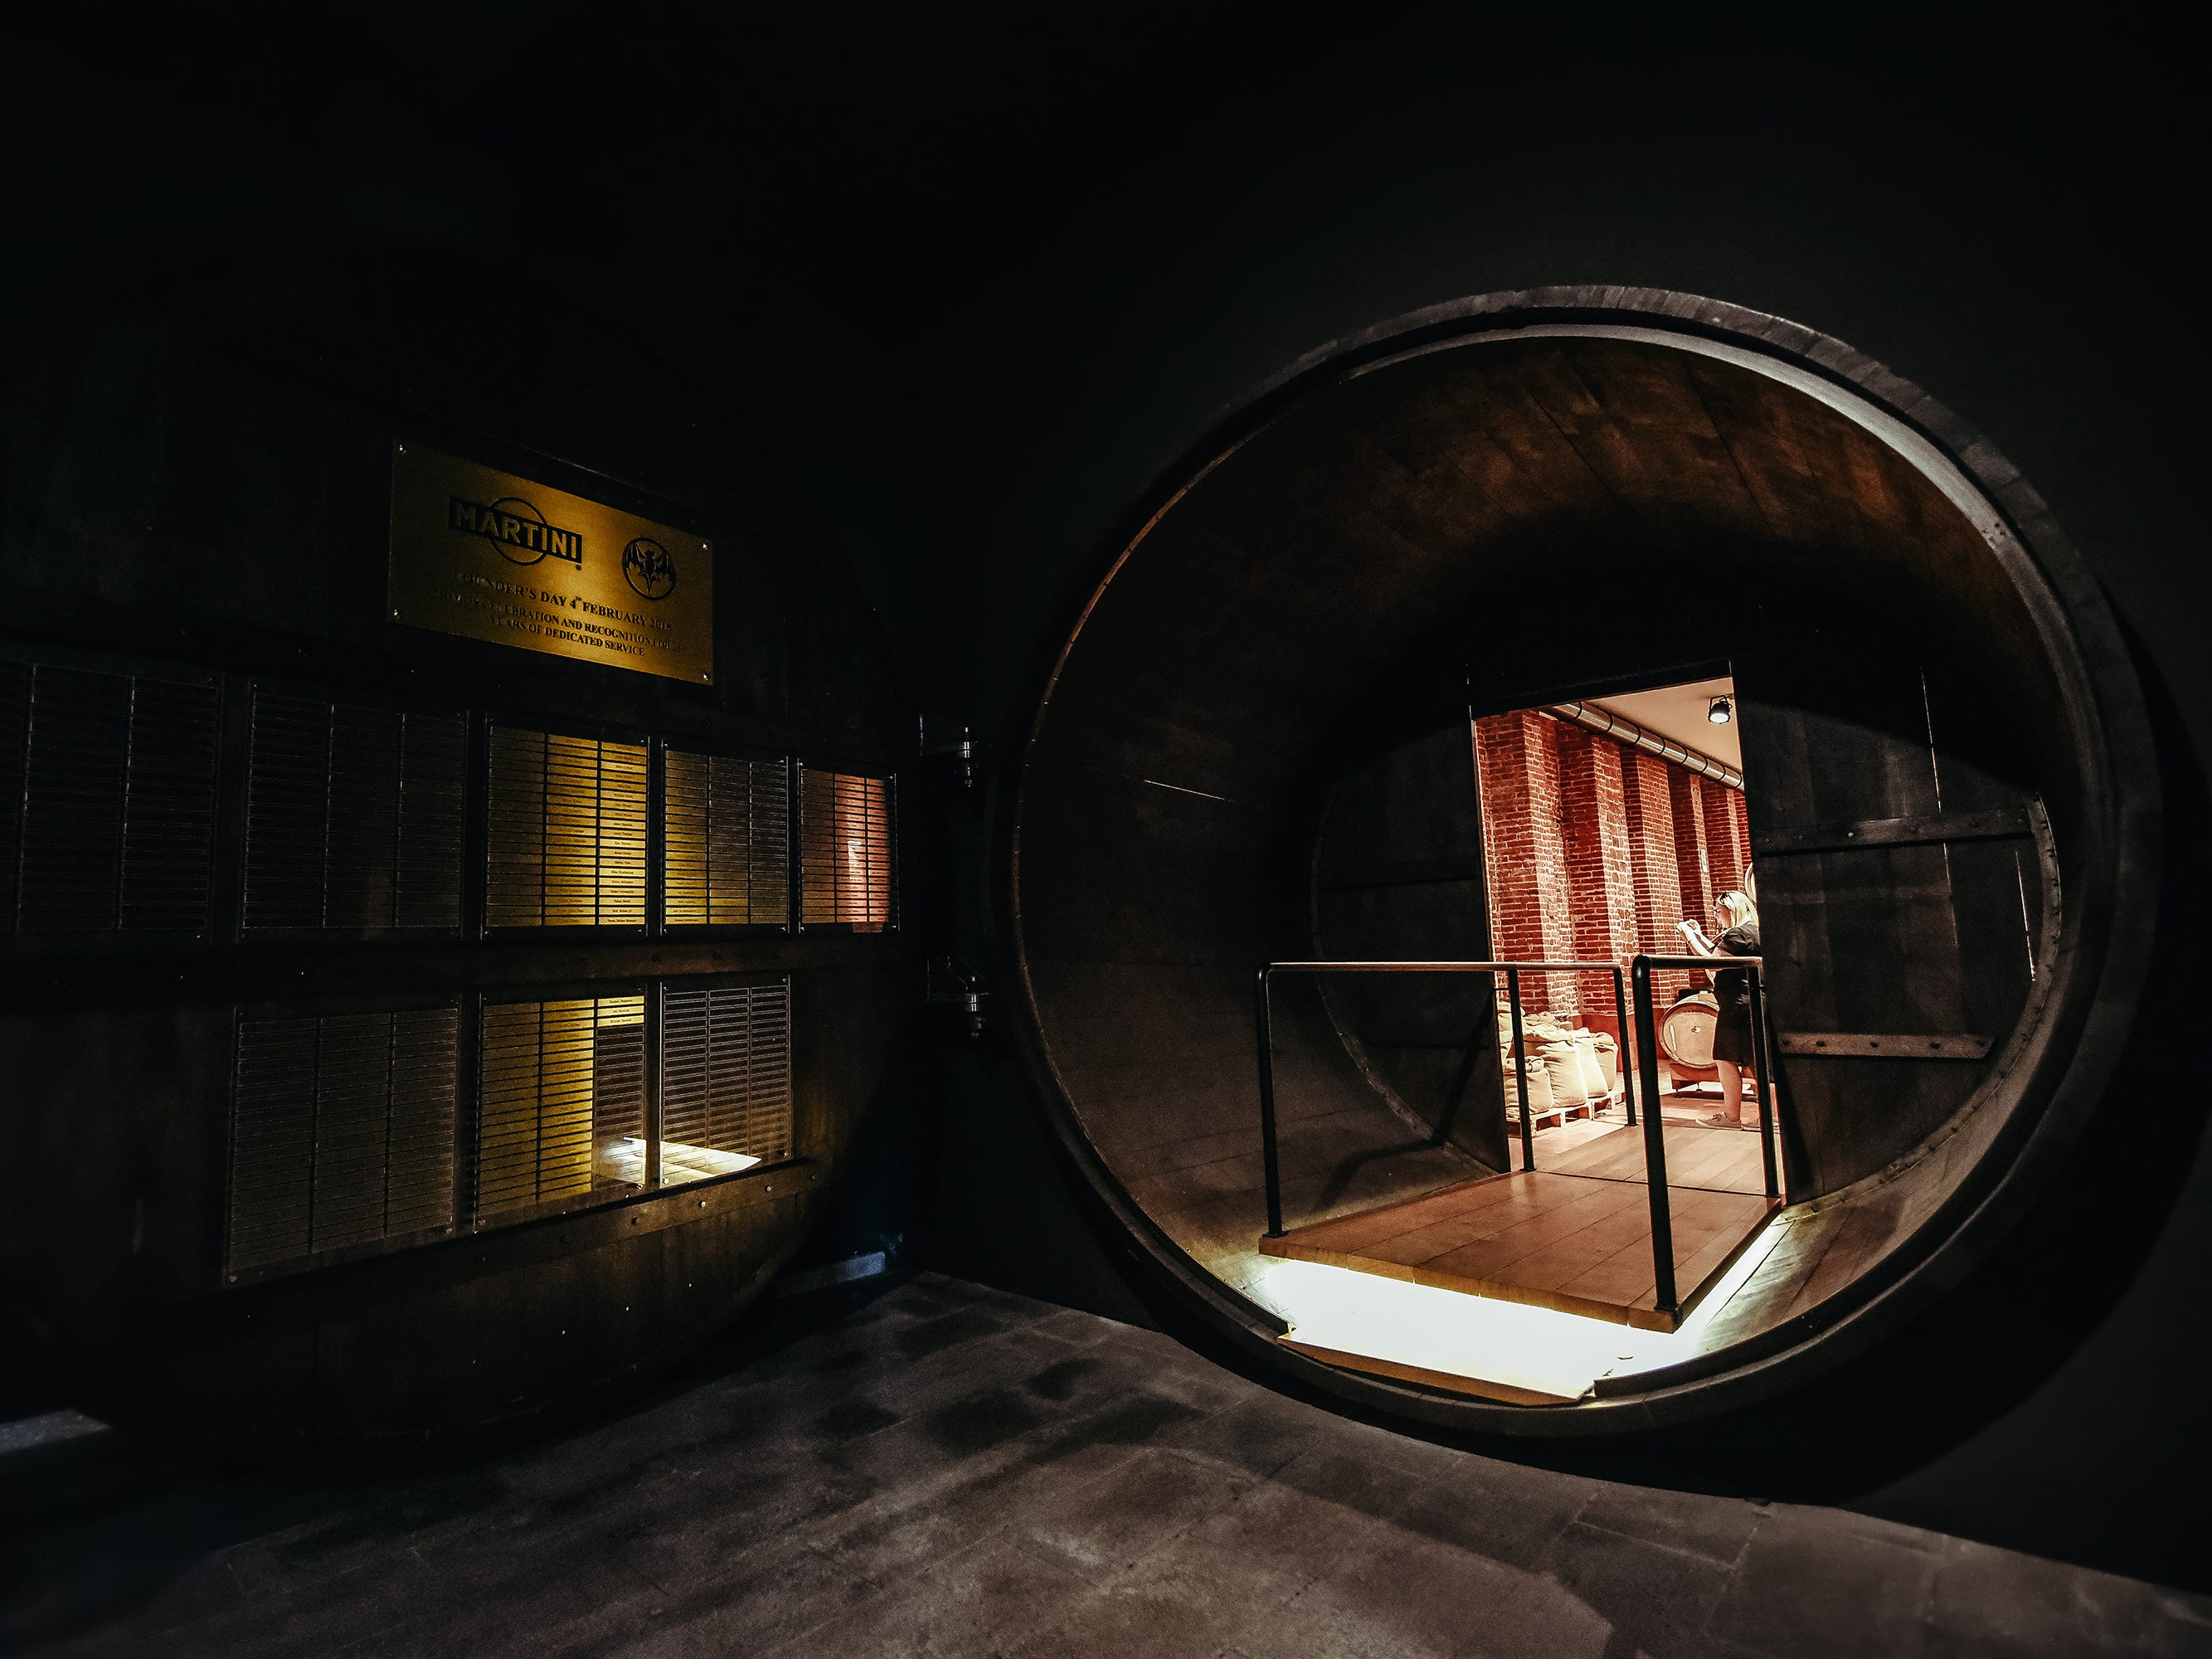 Step through the vault entrance to discover even more secrets about the world of vermouth. Tickets to Casa Martini optionally include activities such as cocktail courses and vermouth blending.